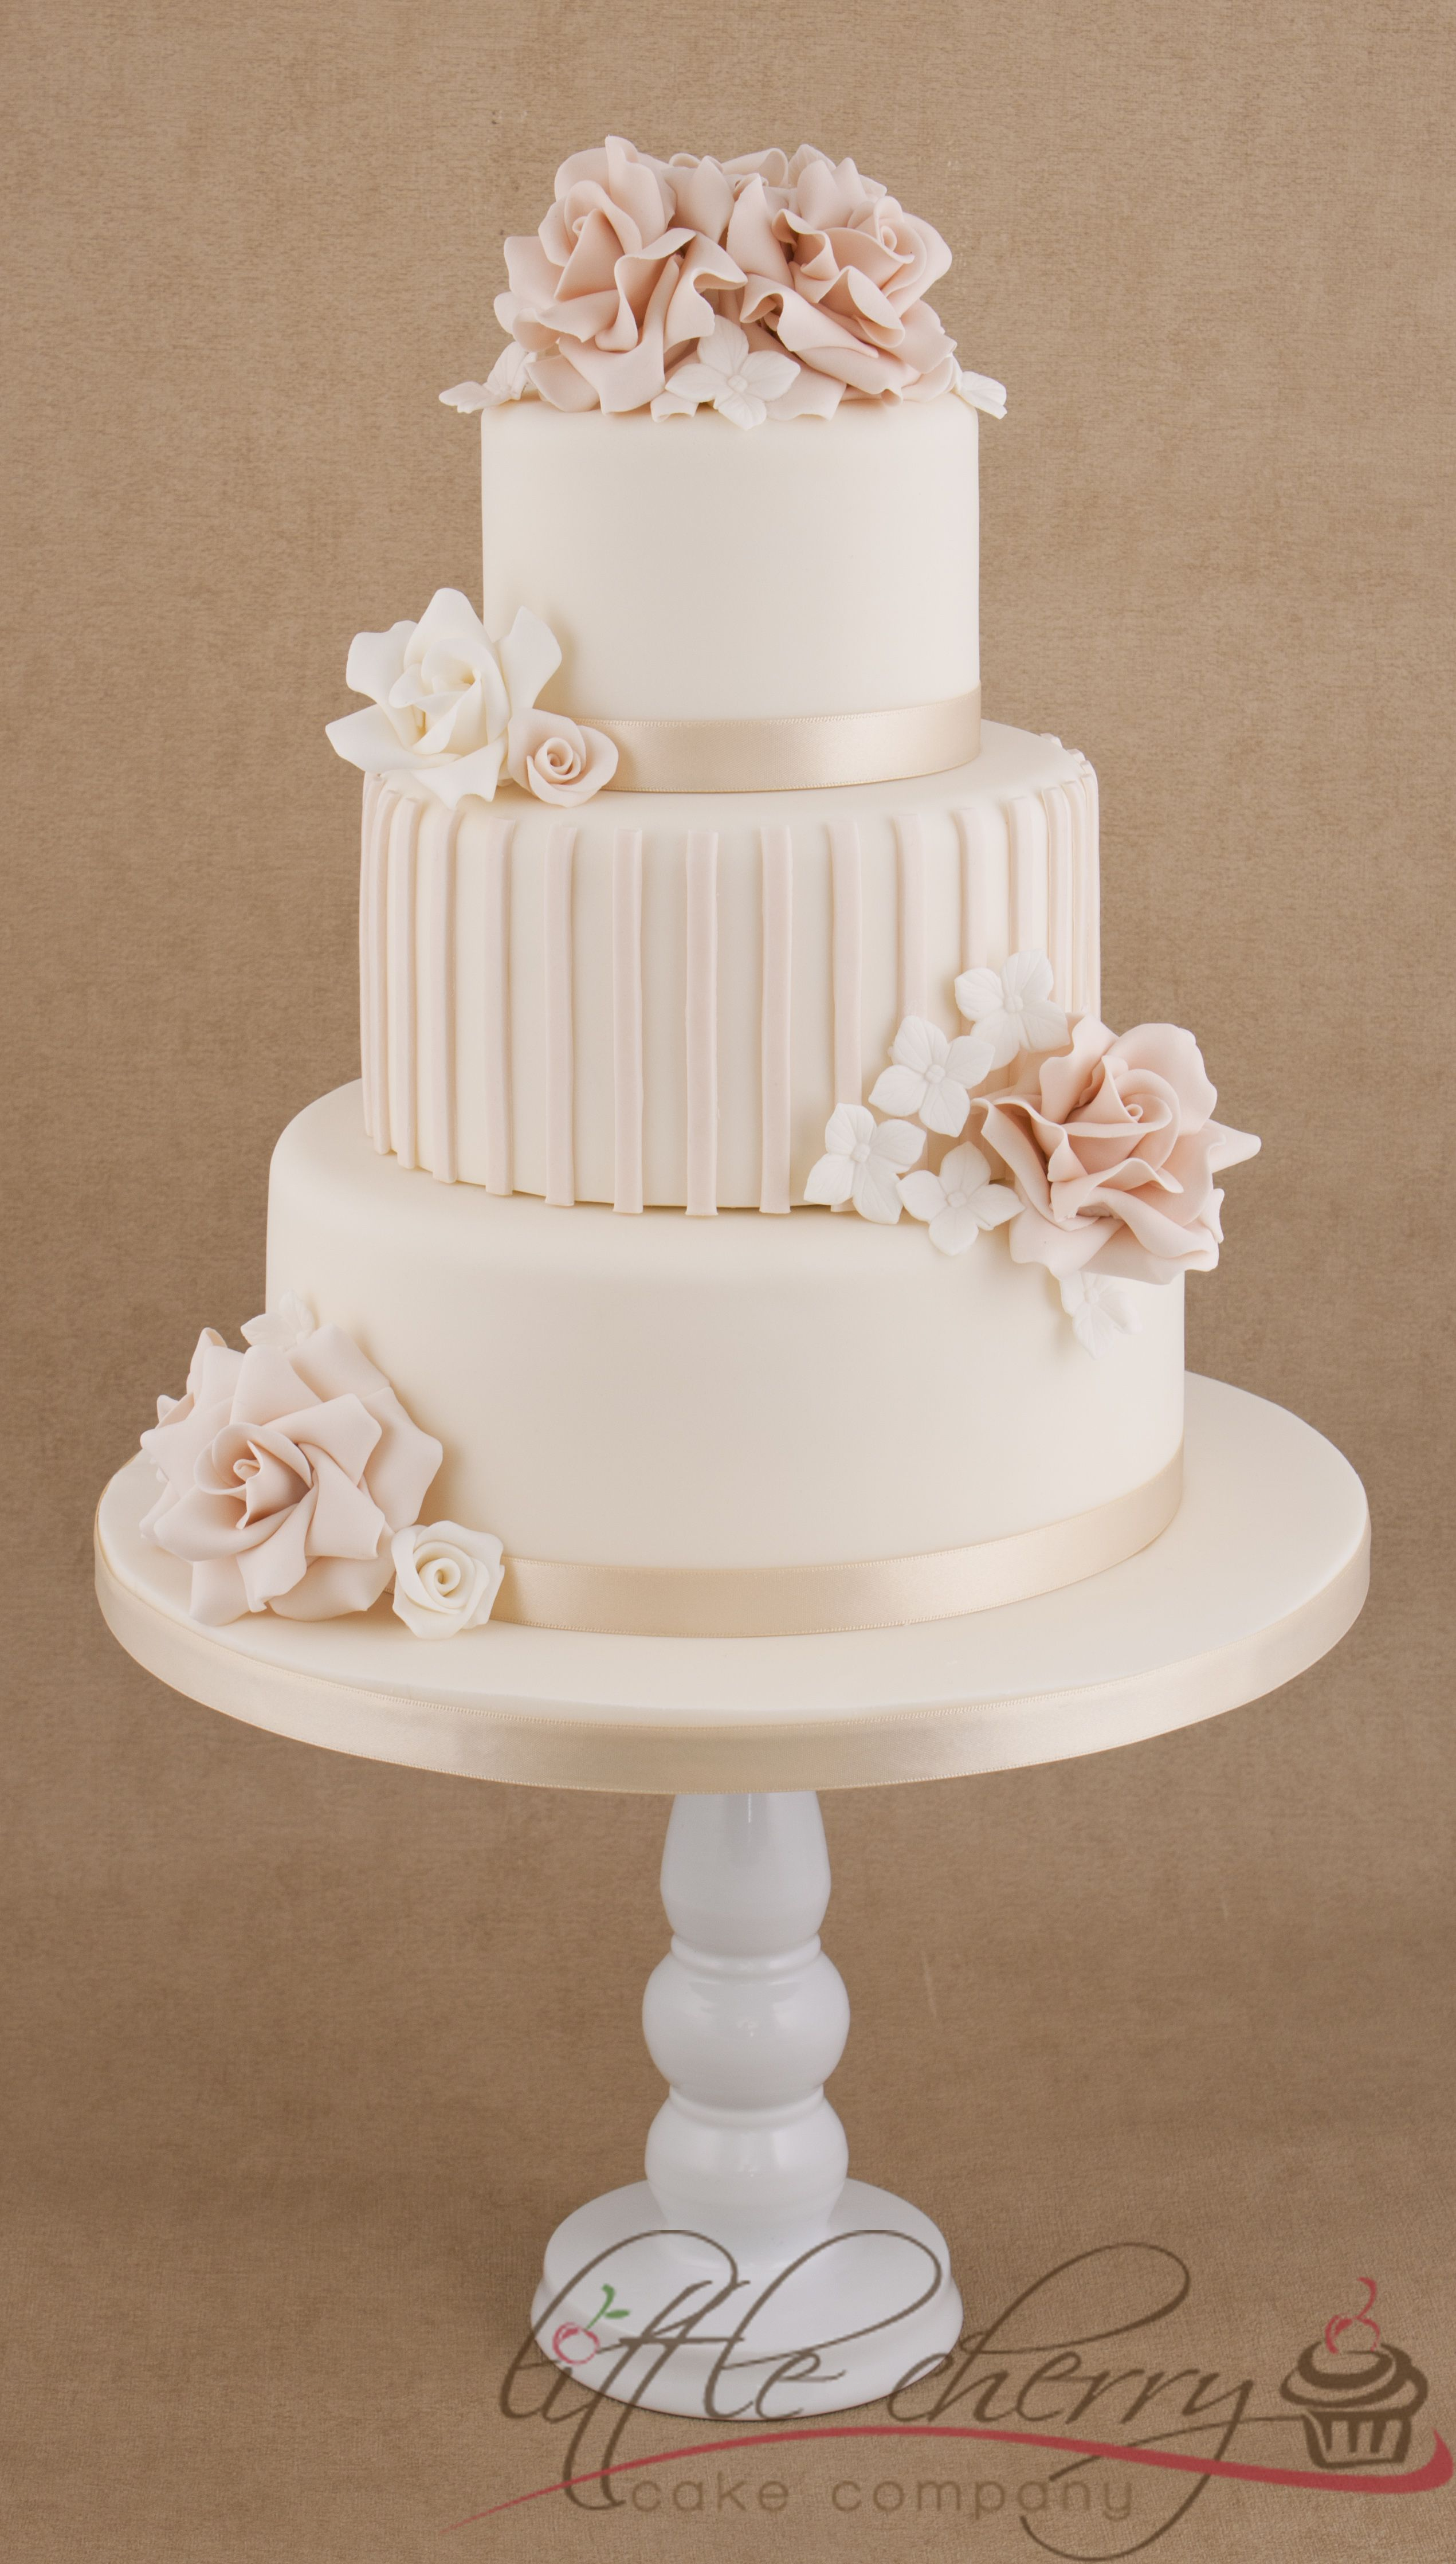 Roses and stripes 3 tier wedding cake bride give me free reign roses and stripes 3 tier wedding cake bride give me free reign with this design junglespirit Image collections